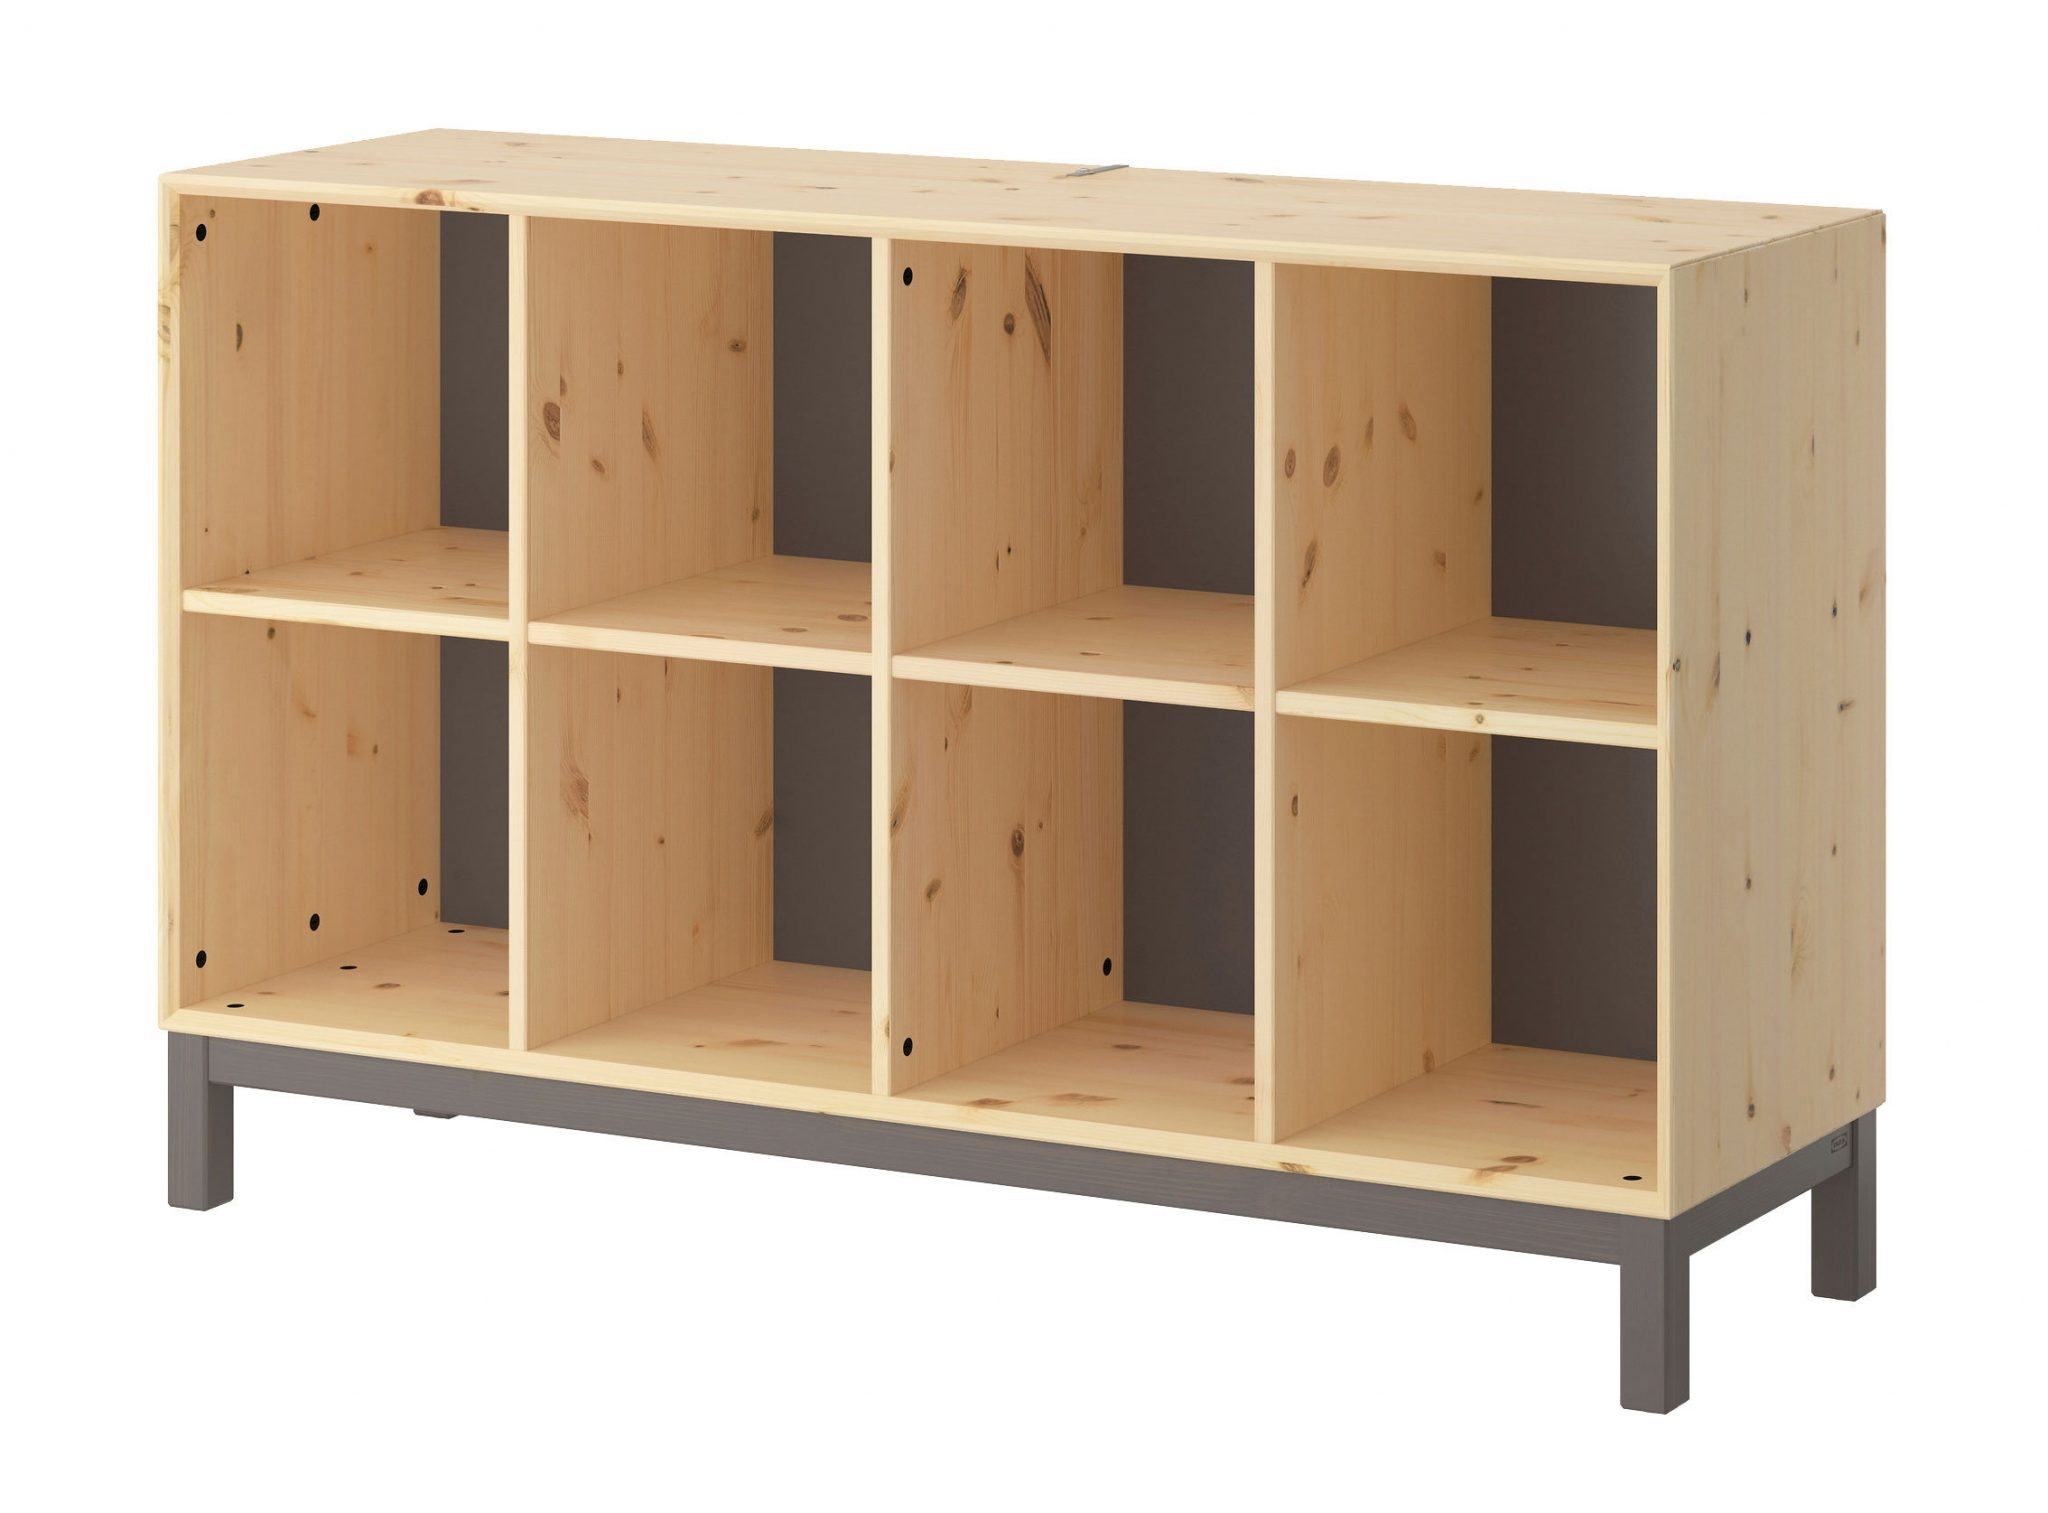 Ikea norn s the solid wood expedit alternative for djs for Ikea lp storage